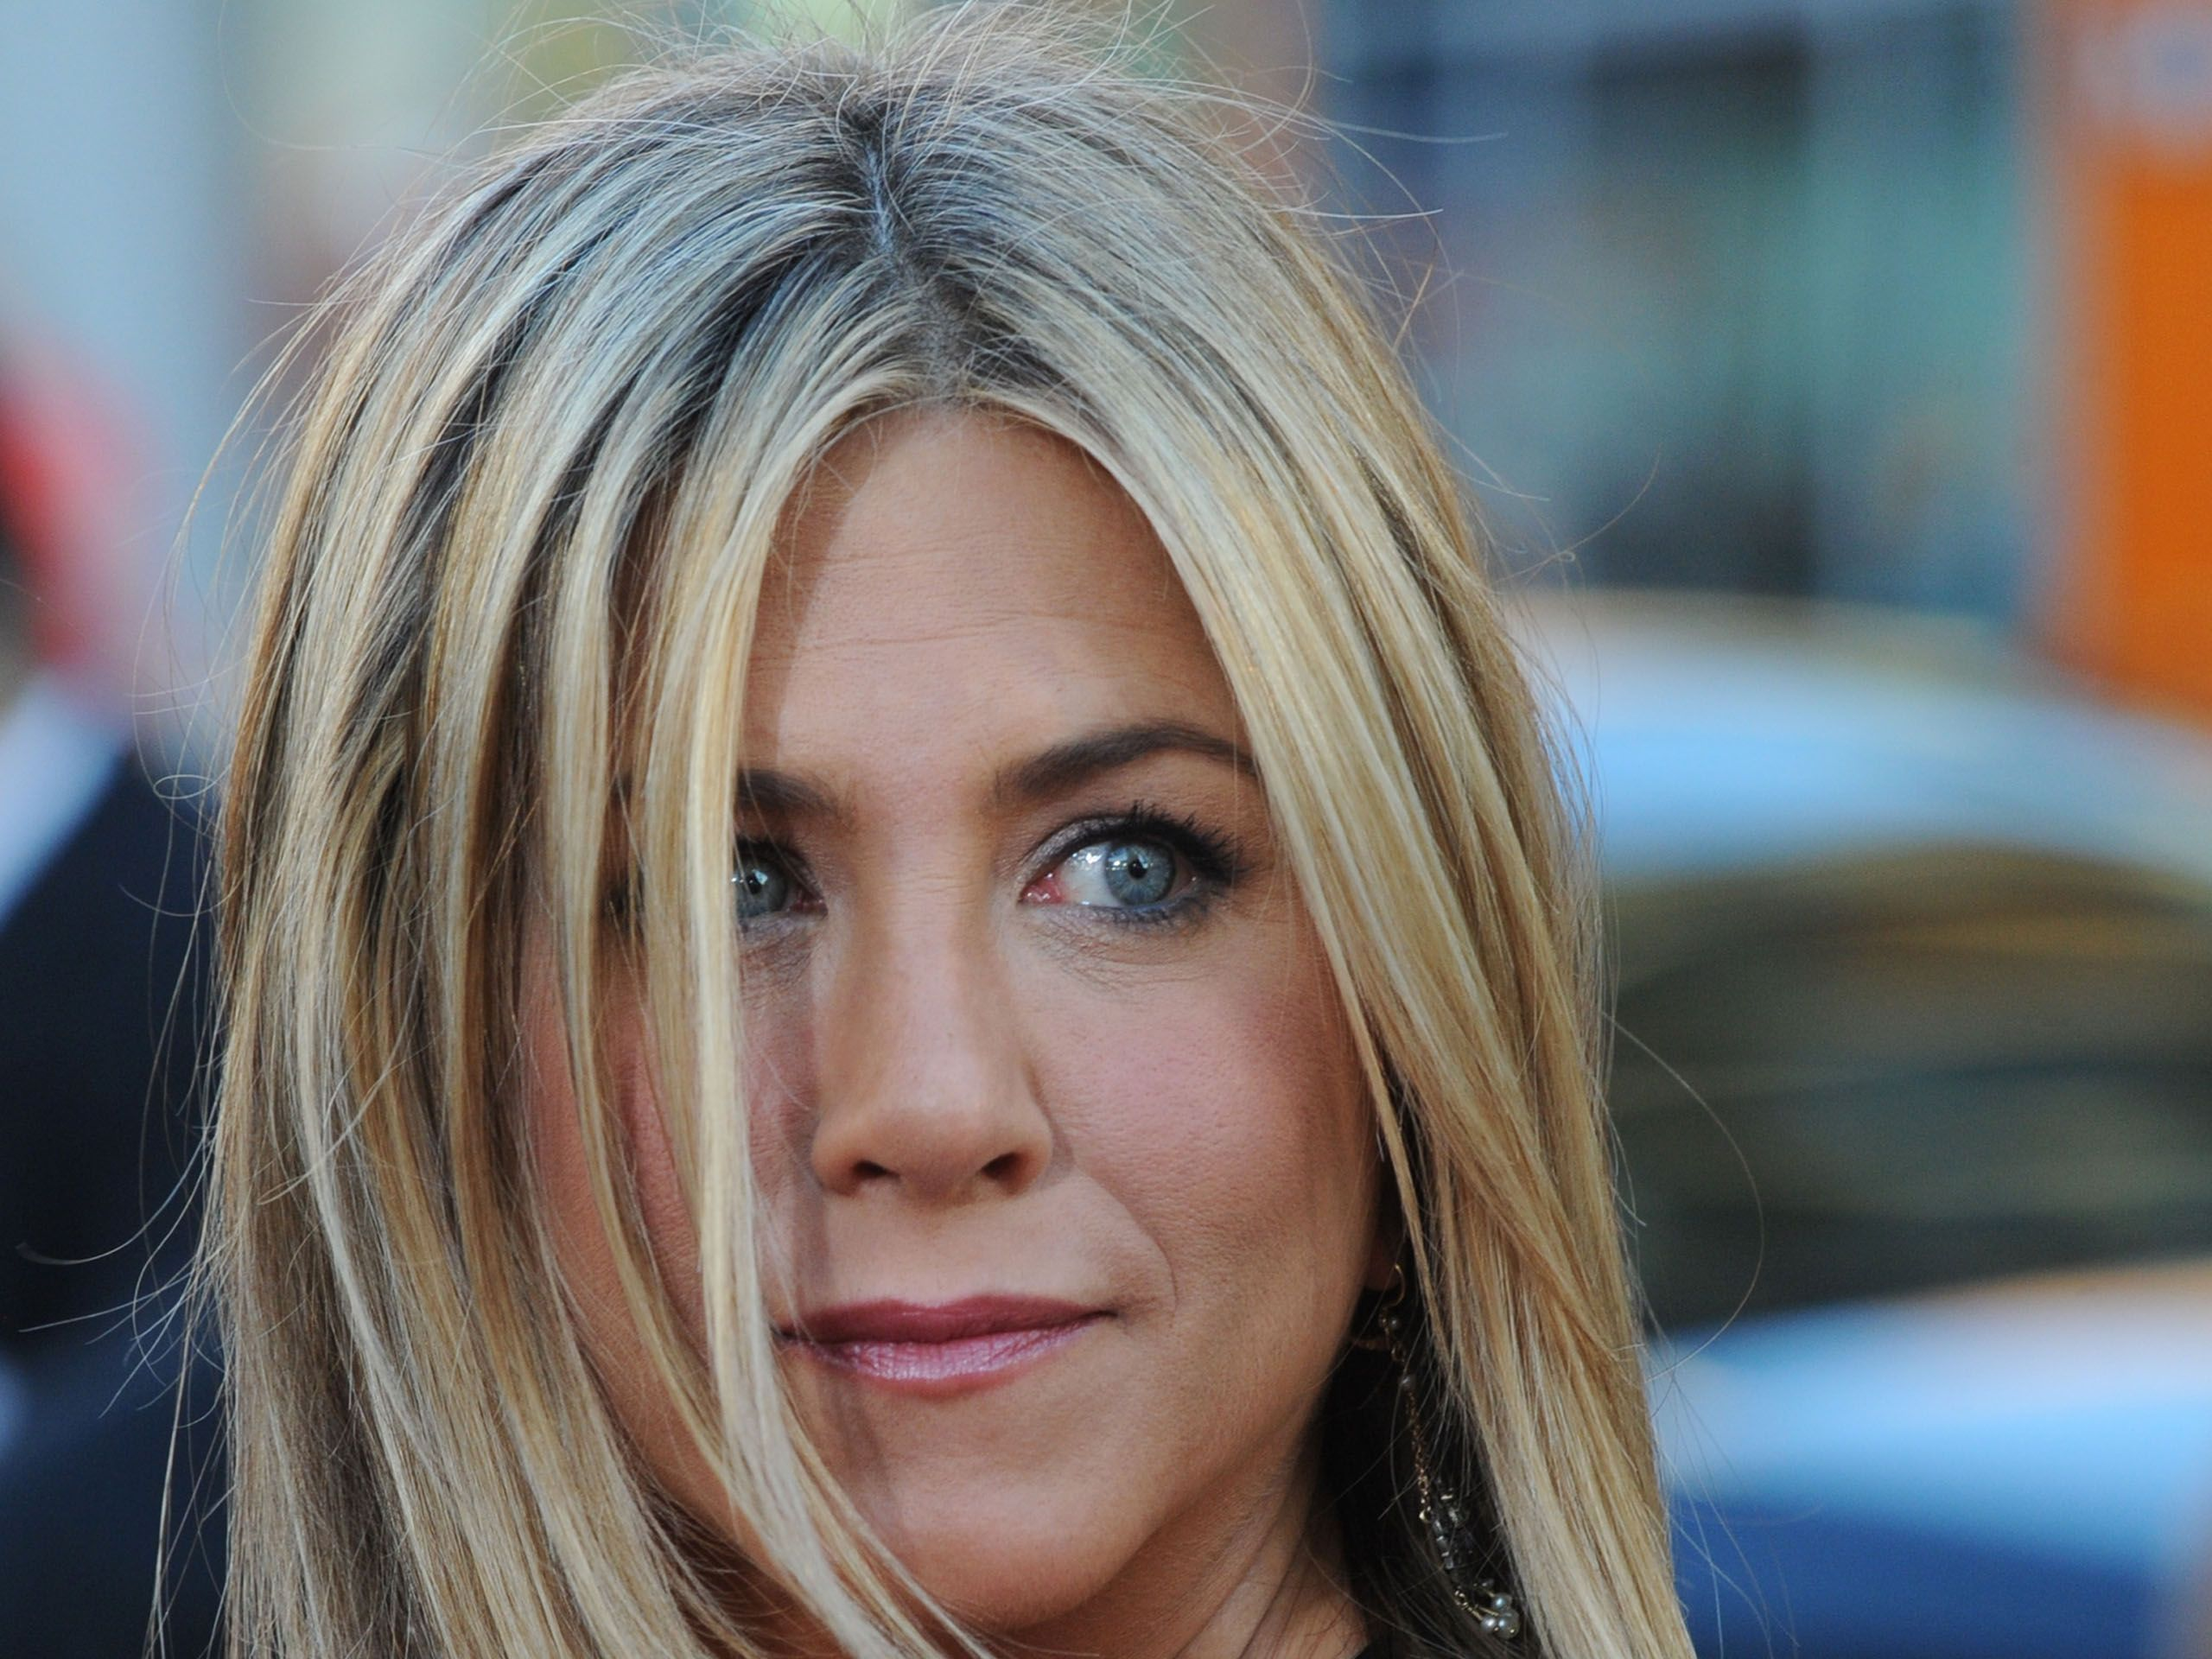 Jennifer Aniston Hot And Sexy Wallpapers - All HD Wallpapers